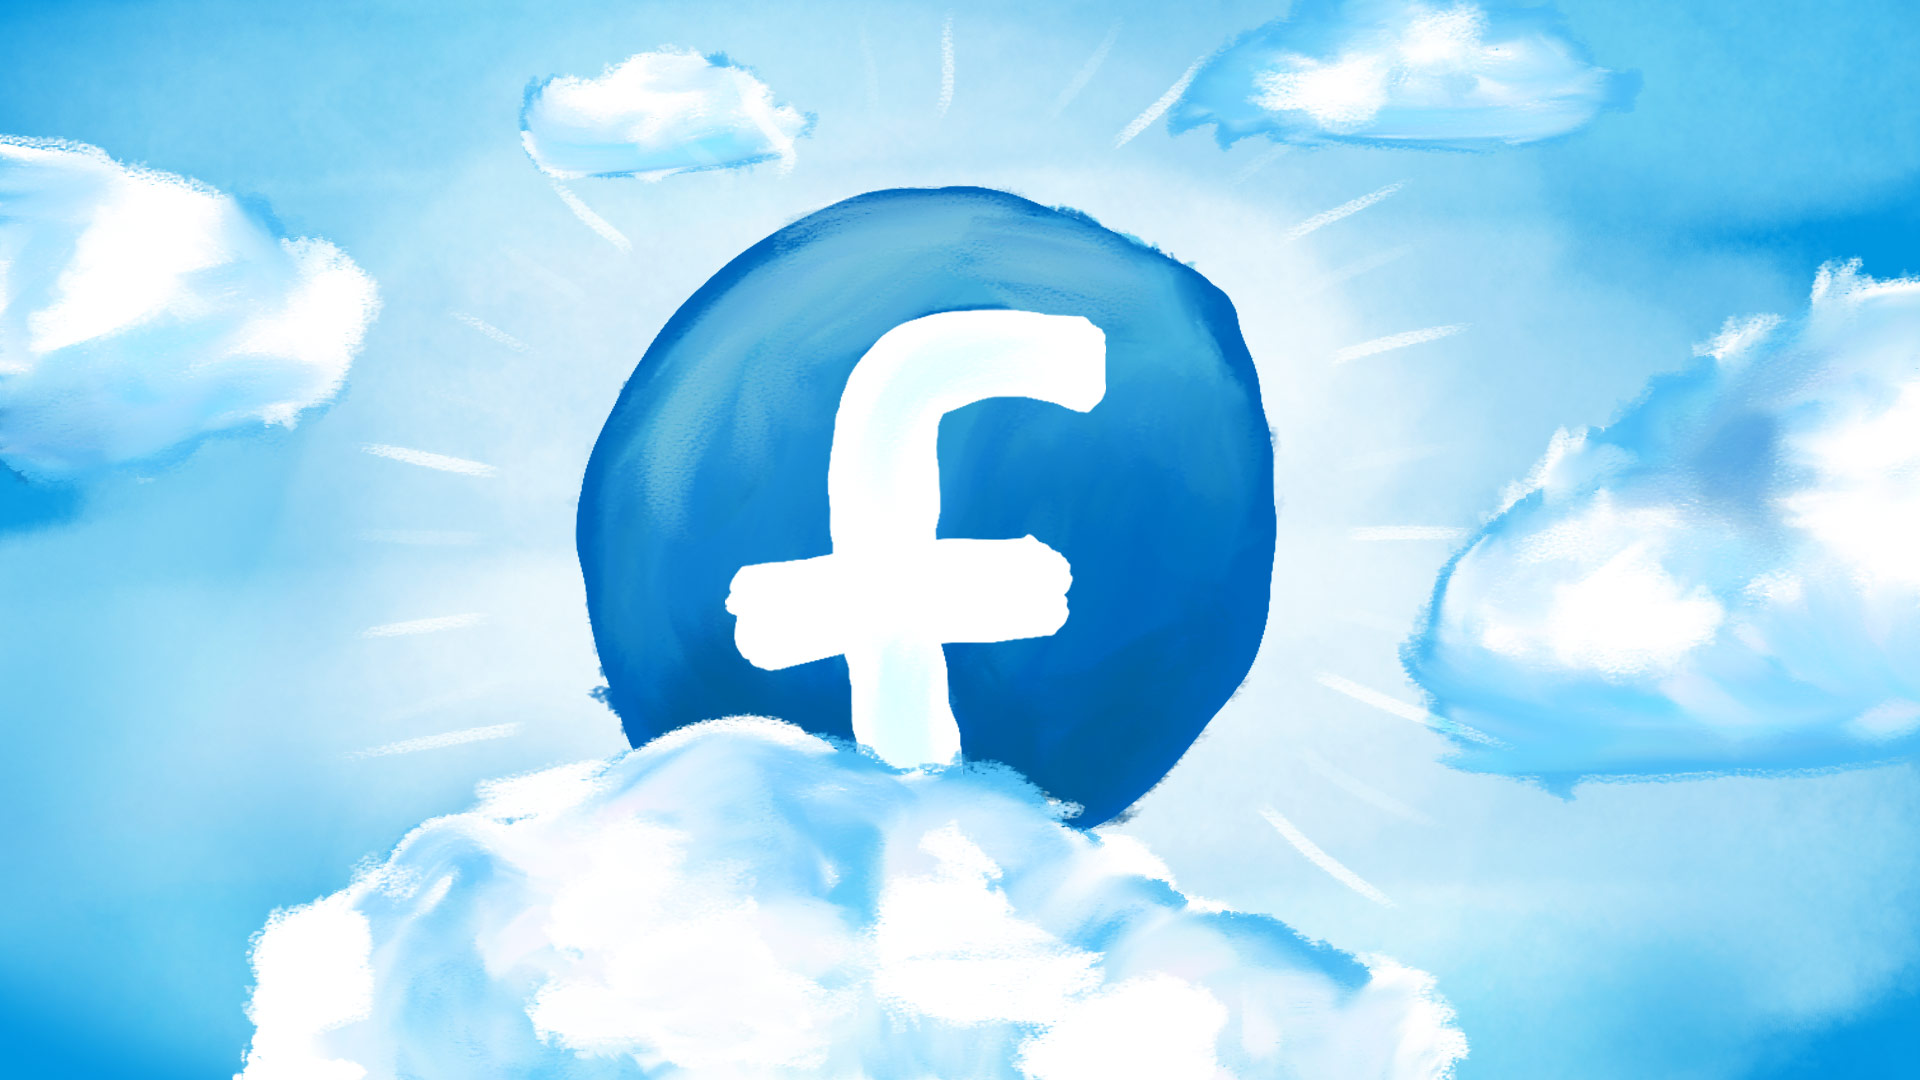 A gigantic Facebook logo breaks through fluffy painted clouds in a majestic light-filled burst! It's Facebook Fundraising! And a divinely simple template to lead the way!